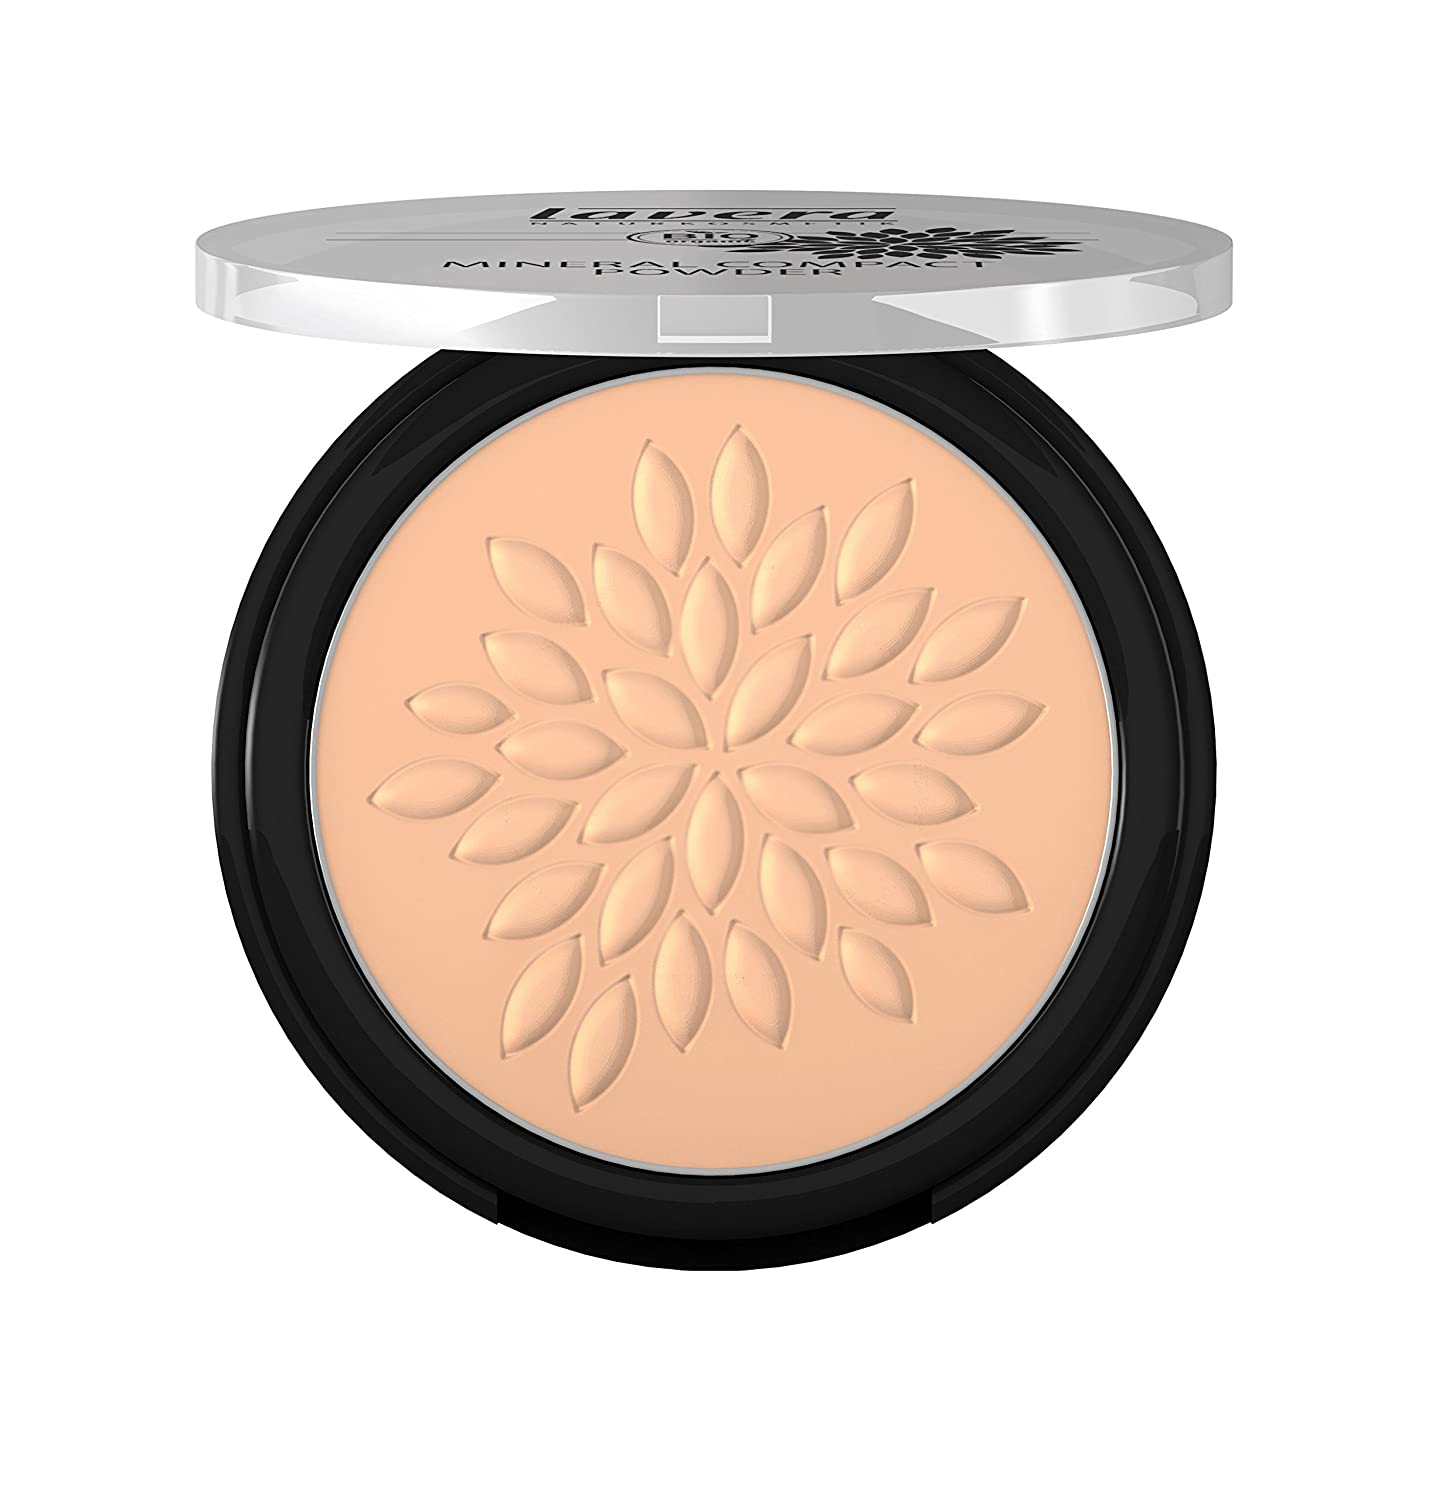 Lavera Natural Mineral Compact Powder (Honey), Fix Concealer and Foundation (For Those With Medium Skin Tones) 7g/0.23oz